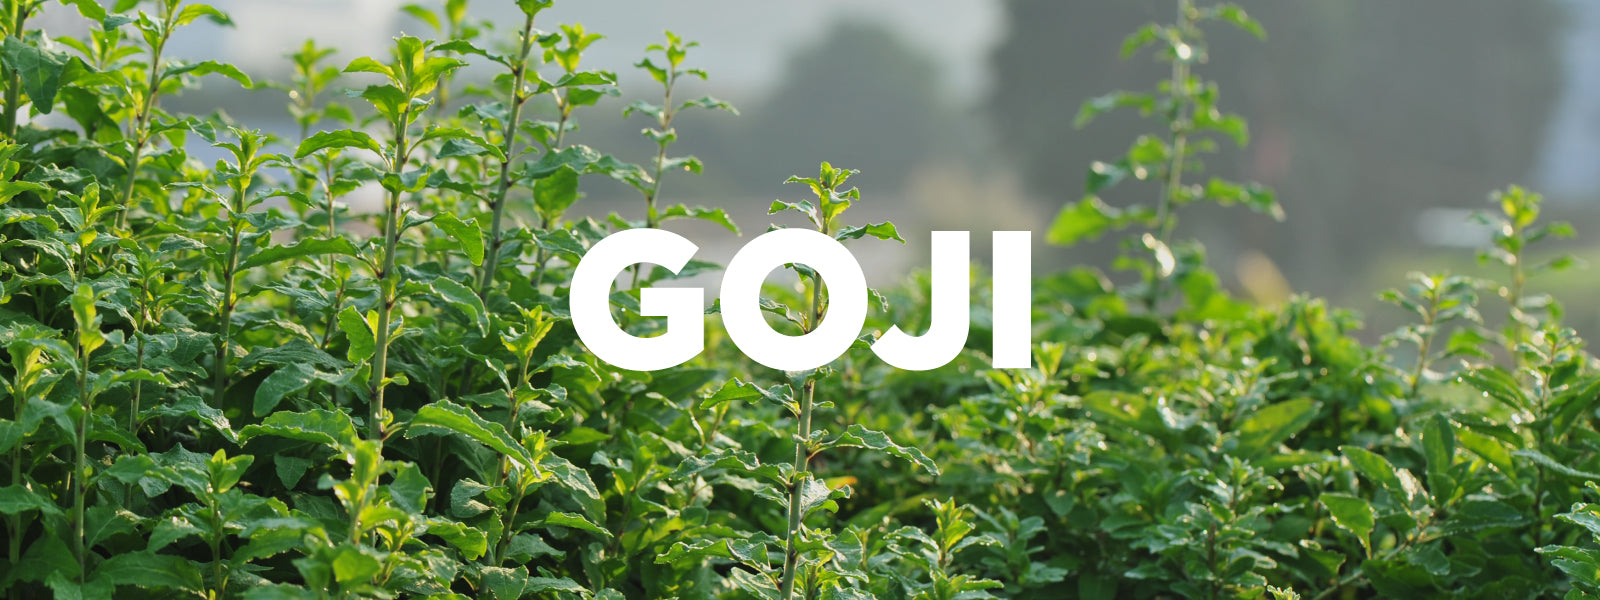 The Goji Berry from the 'Goji Belt', China.